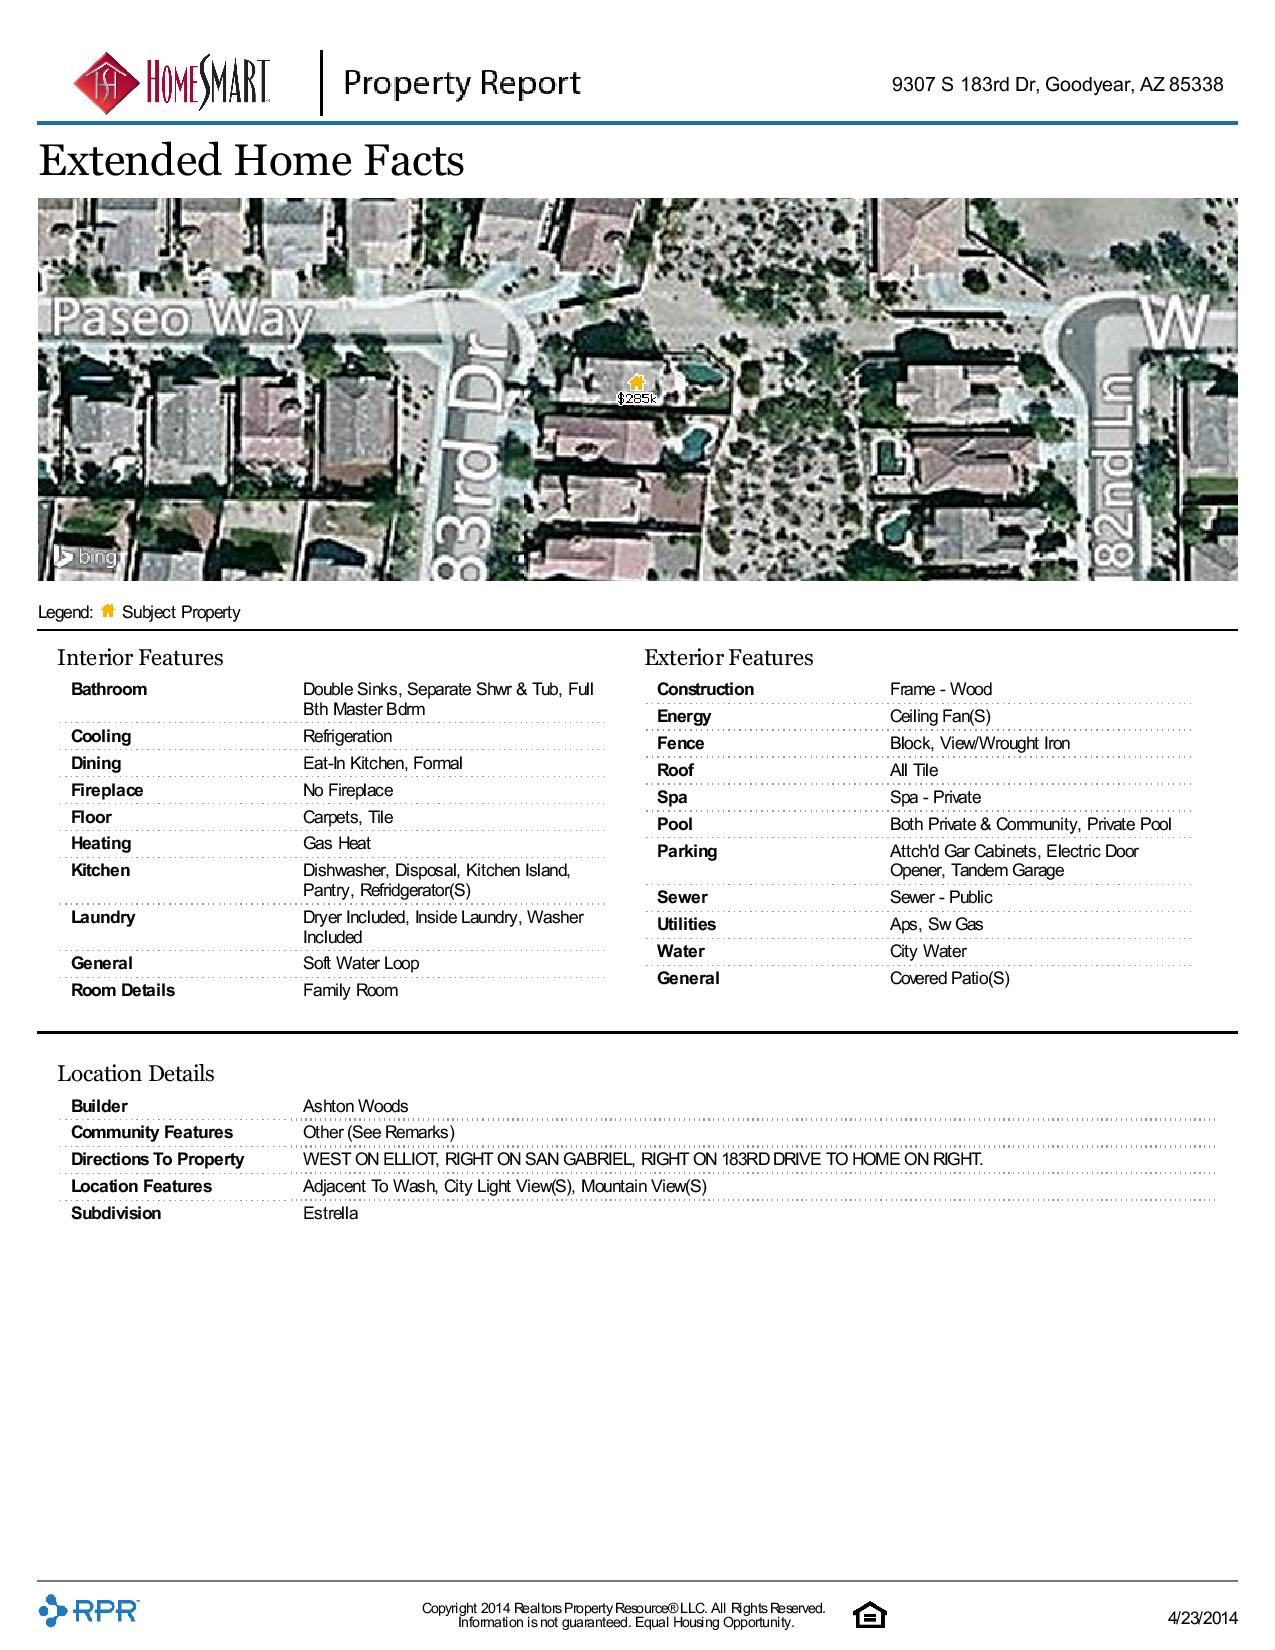 9307-S-183rd-Dr-Goodyear-AZ-85338-page-004